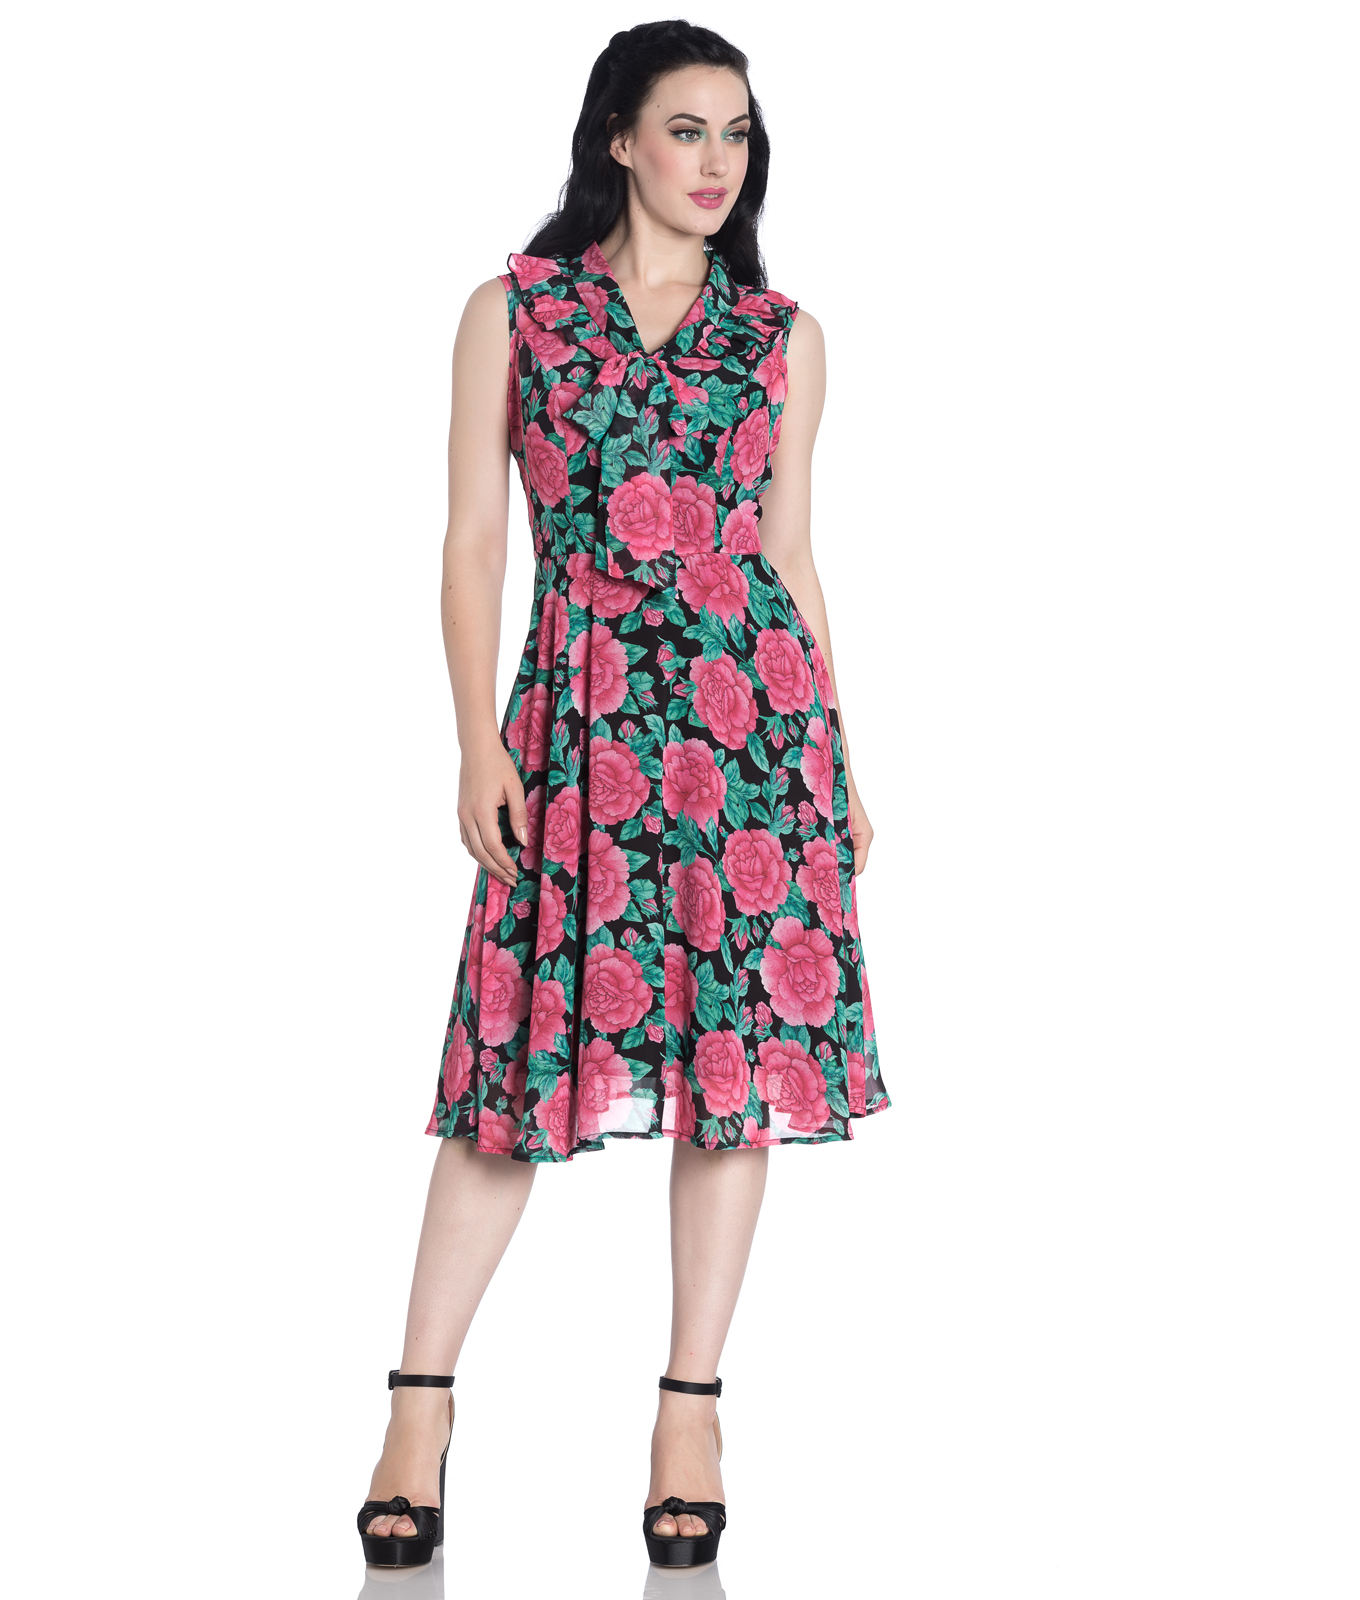 40s Style 1940s Inspired Dresses